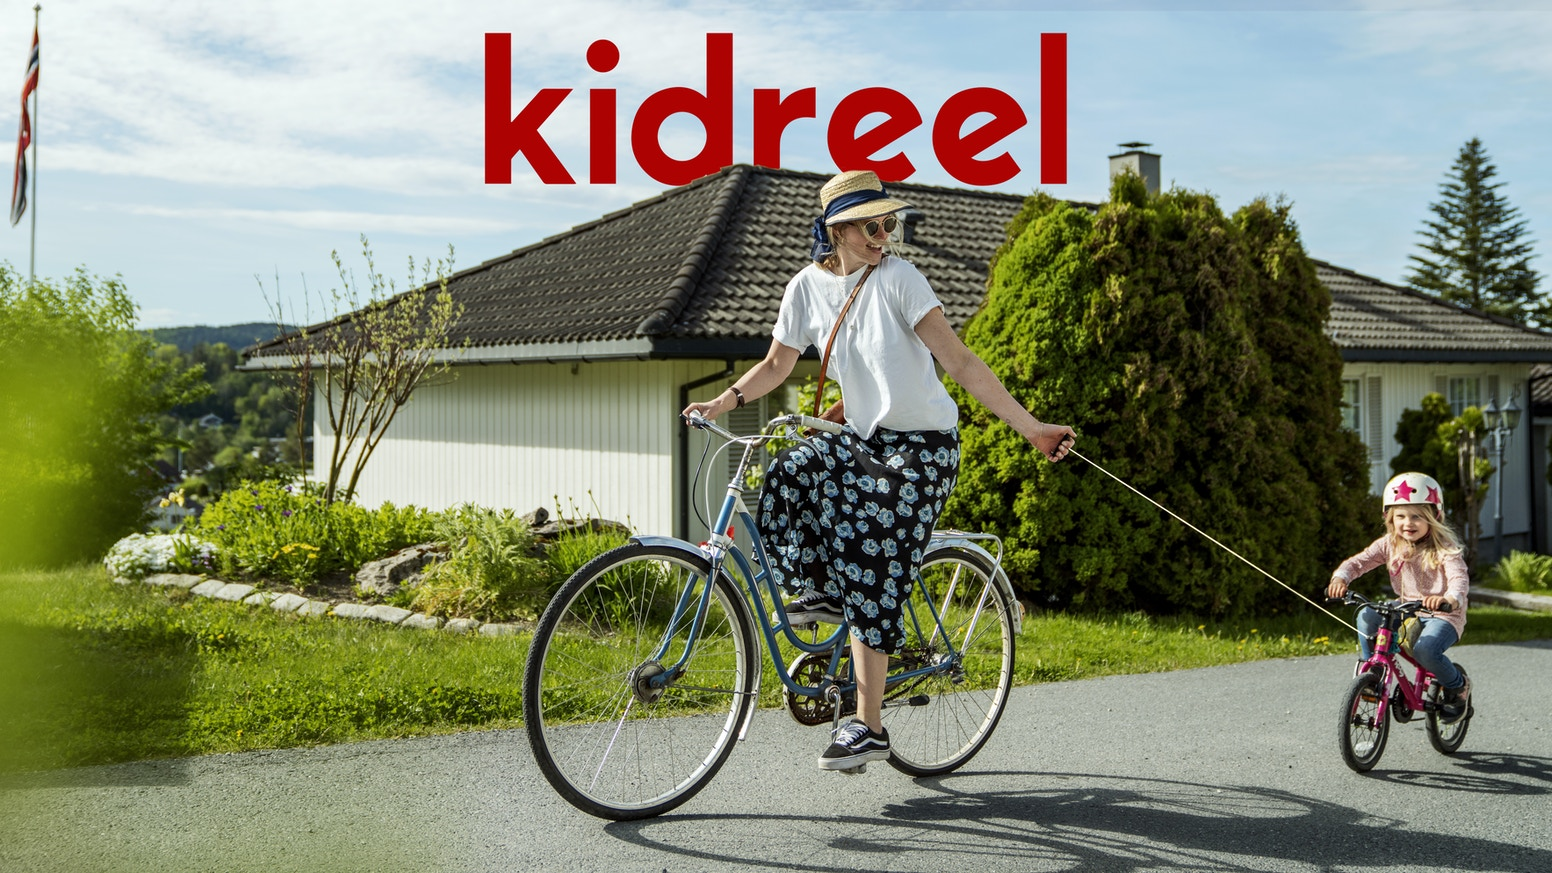 Kidreel let parents bring their children along for adventures and it helps families choose the bike over the car in everyday life.